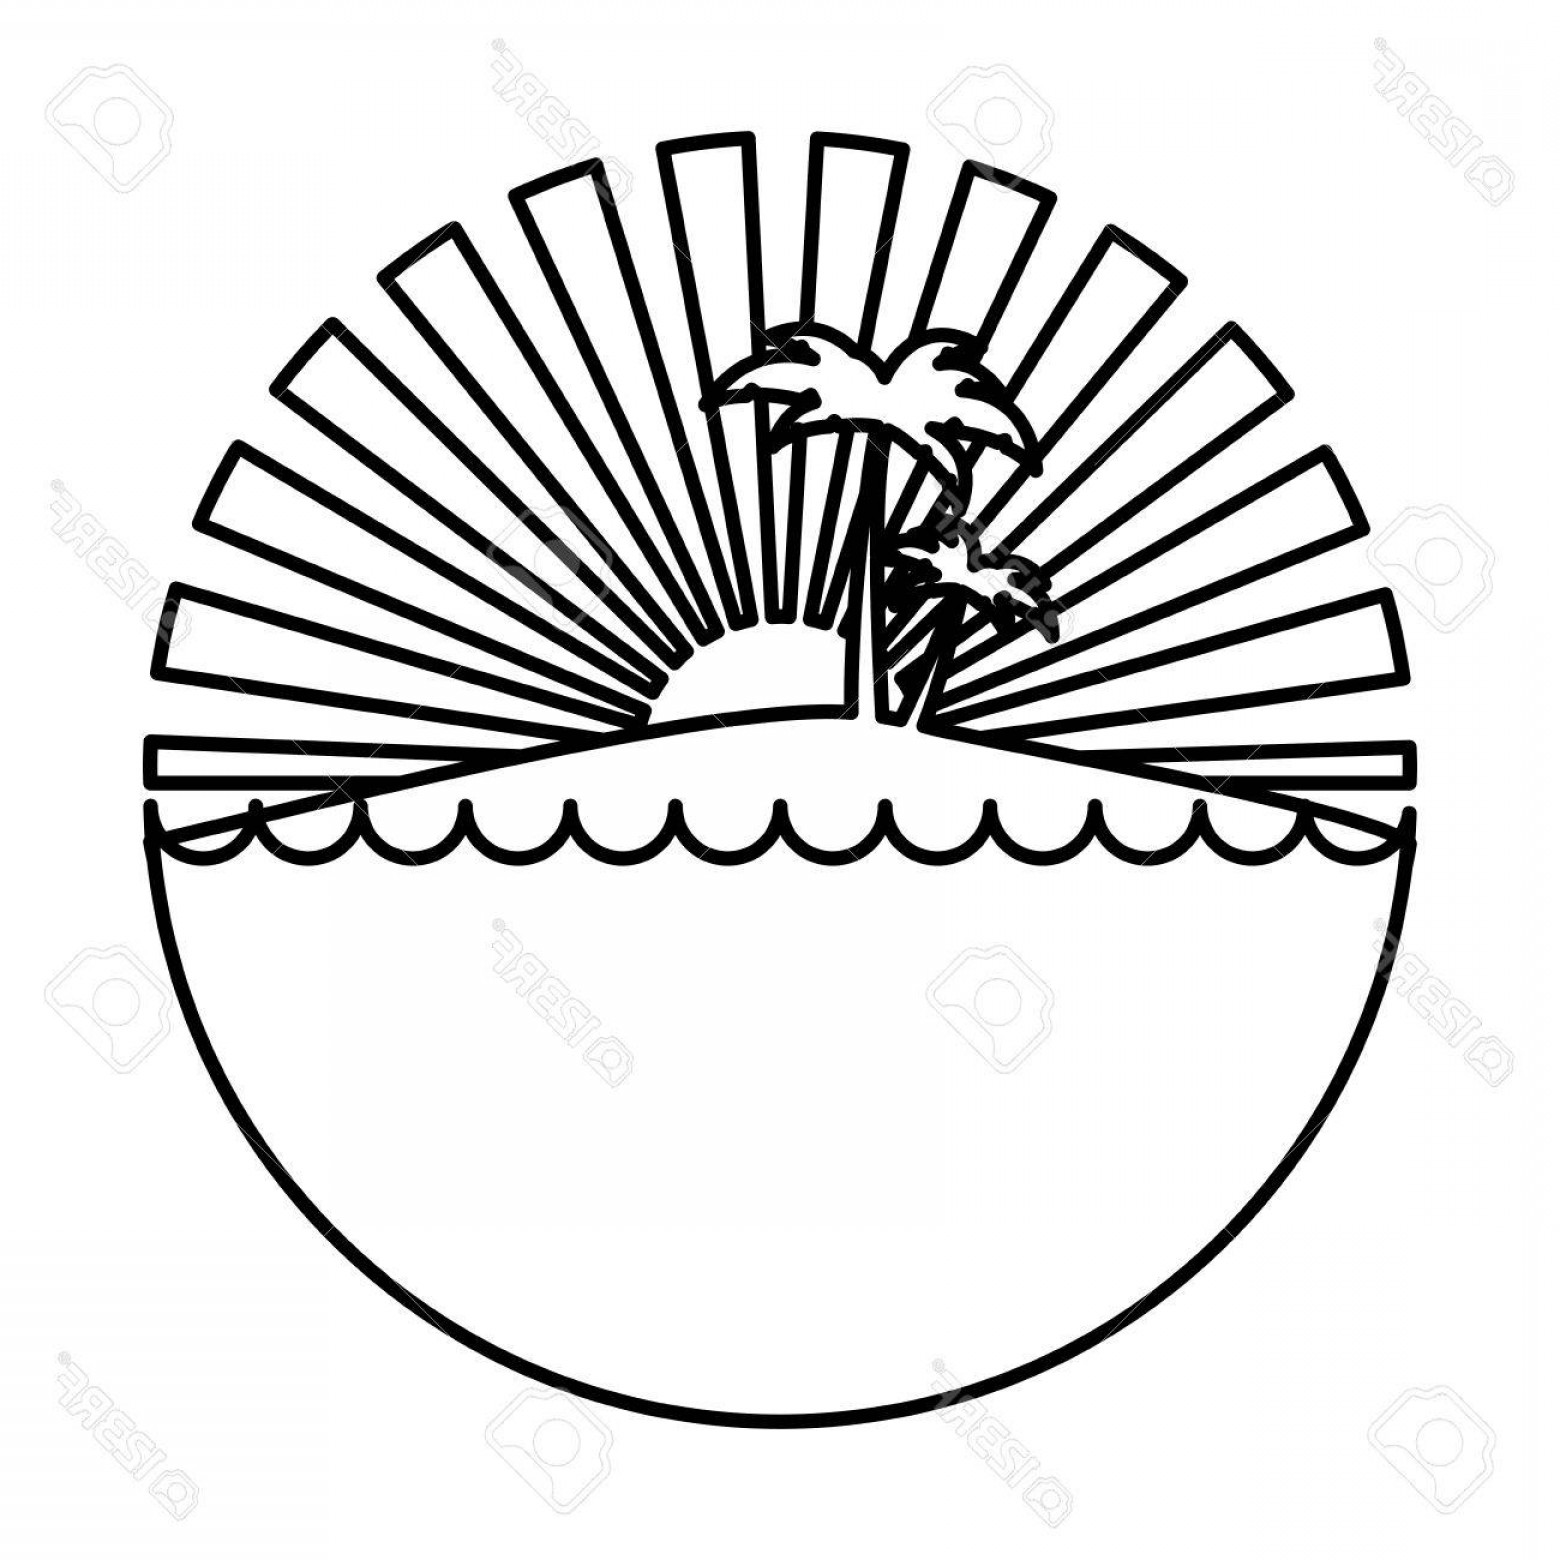 Sunset Black And White Backgrounds Vector: Photostock Vector Silhouette Circular Background Sunset In The Ocean With Island And Palms Vector Illustration